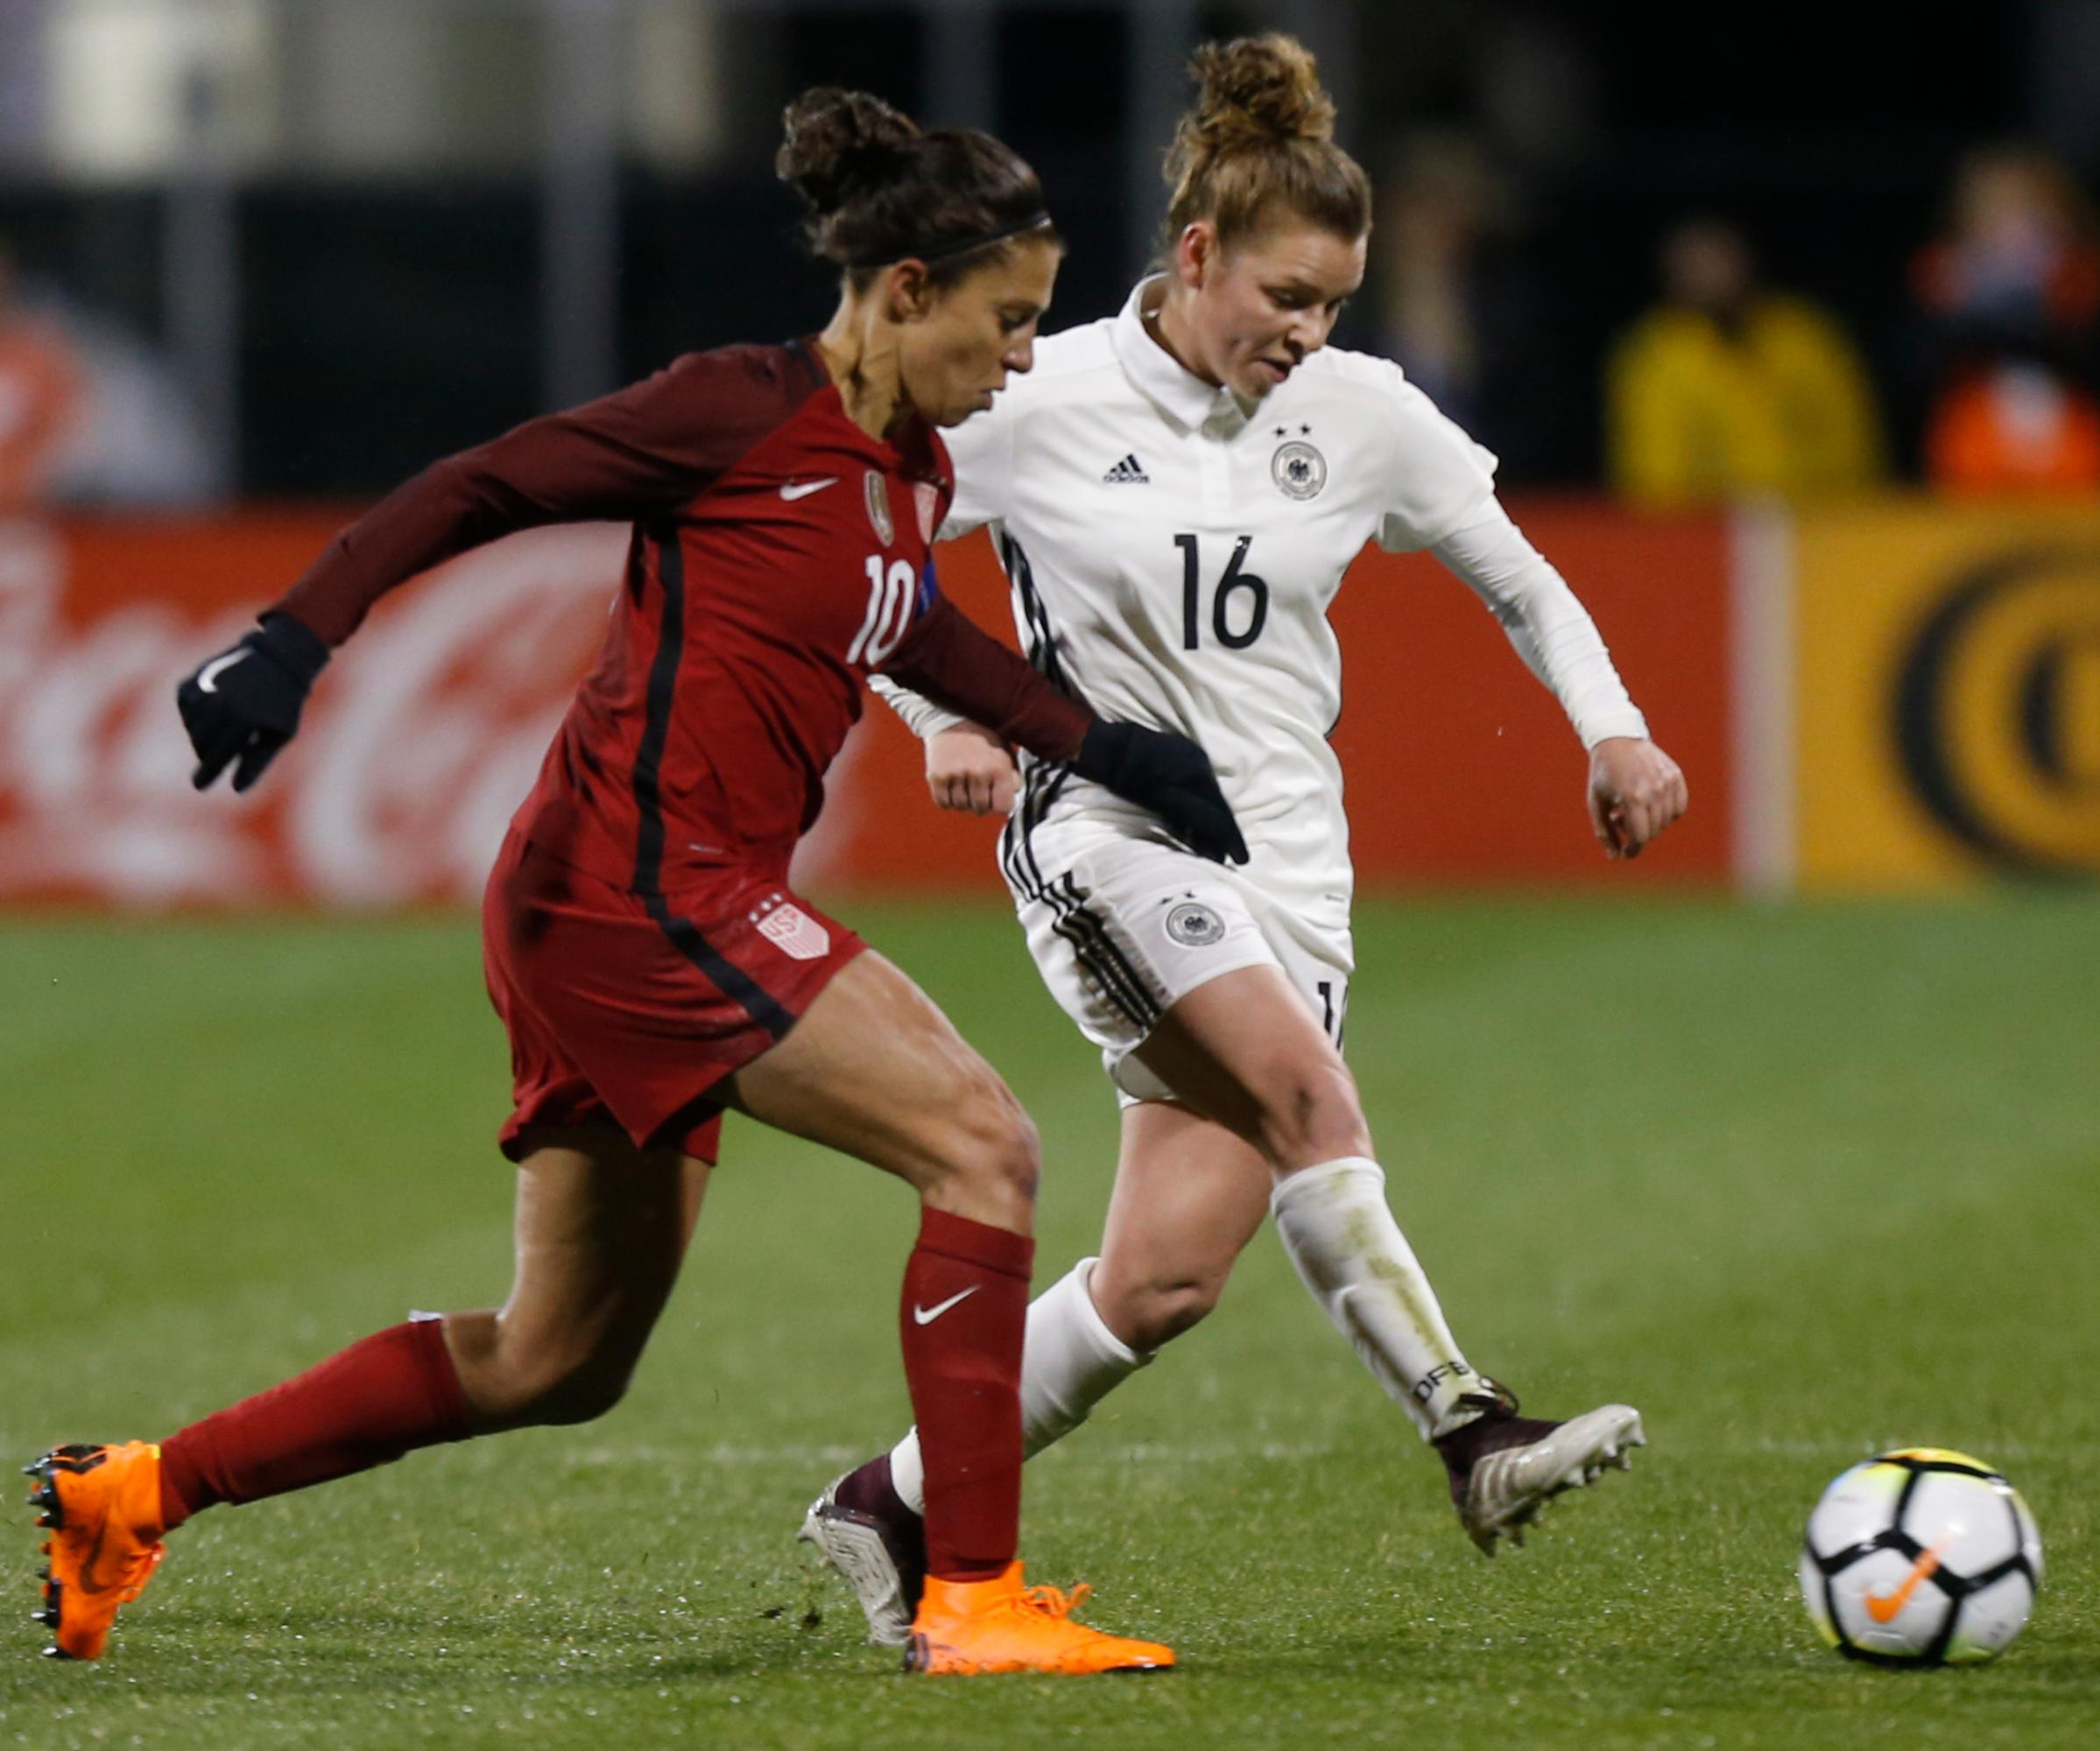 United States' Carli Lloyd, left, and Germany's Linda Dallmann chase the ball during the first half of a SheBelieves Cup women's soccer match Thursday, March 1, 2018, in Columbus, Ohio. (AP Photo/Jay LaPrete)